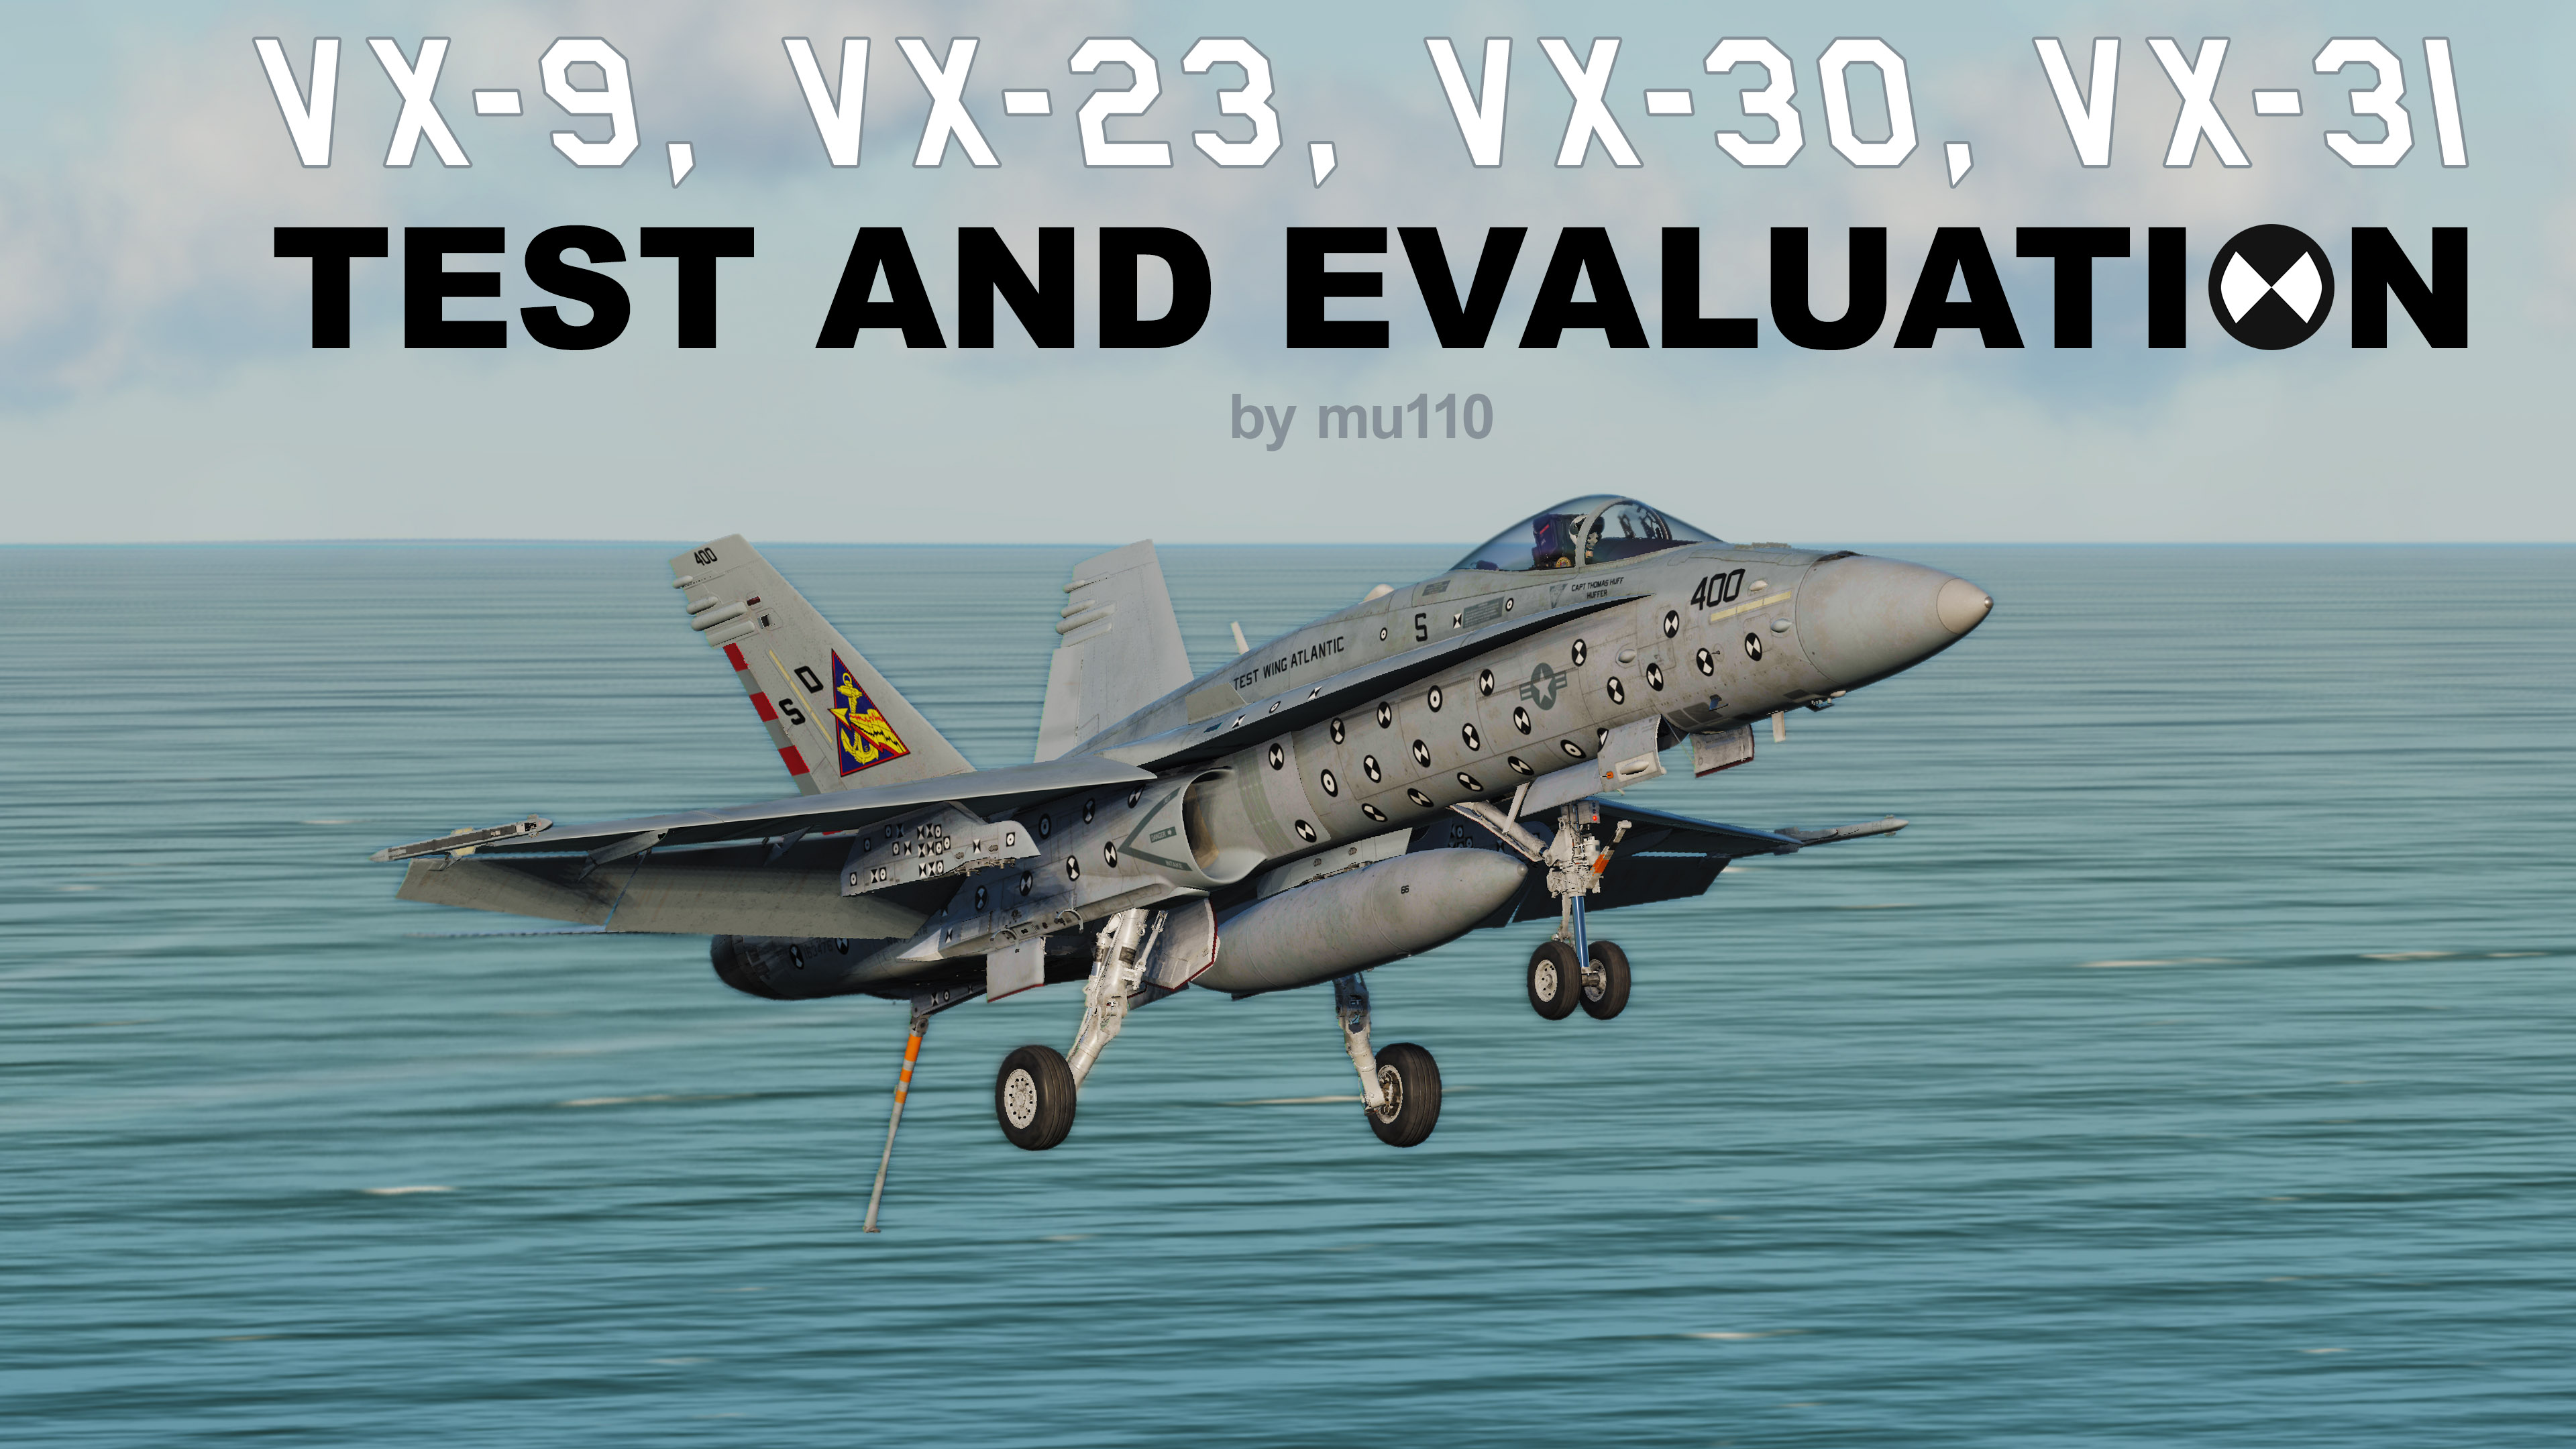 VX-9, VX-23, VX-30, and VX-31 Liveries for the F/A-18C!